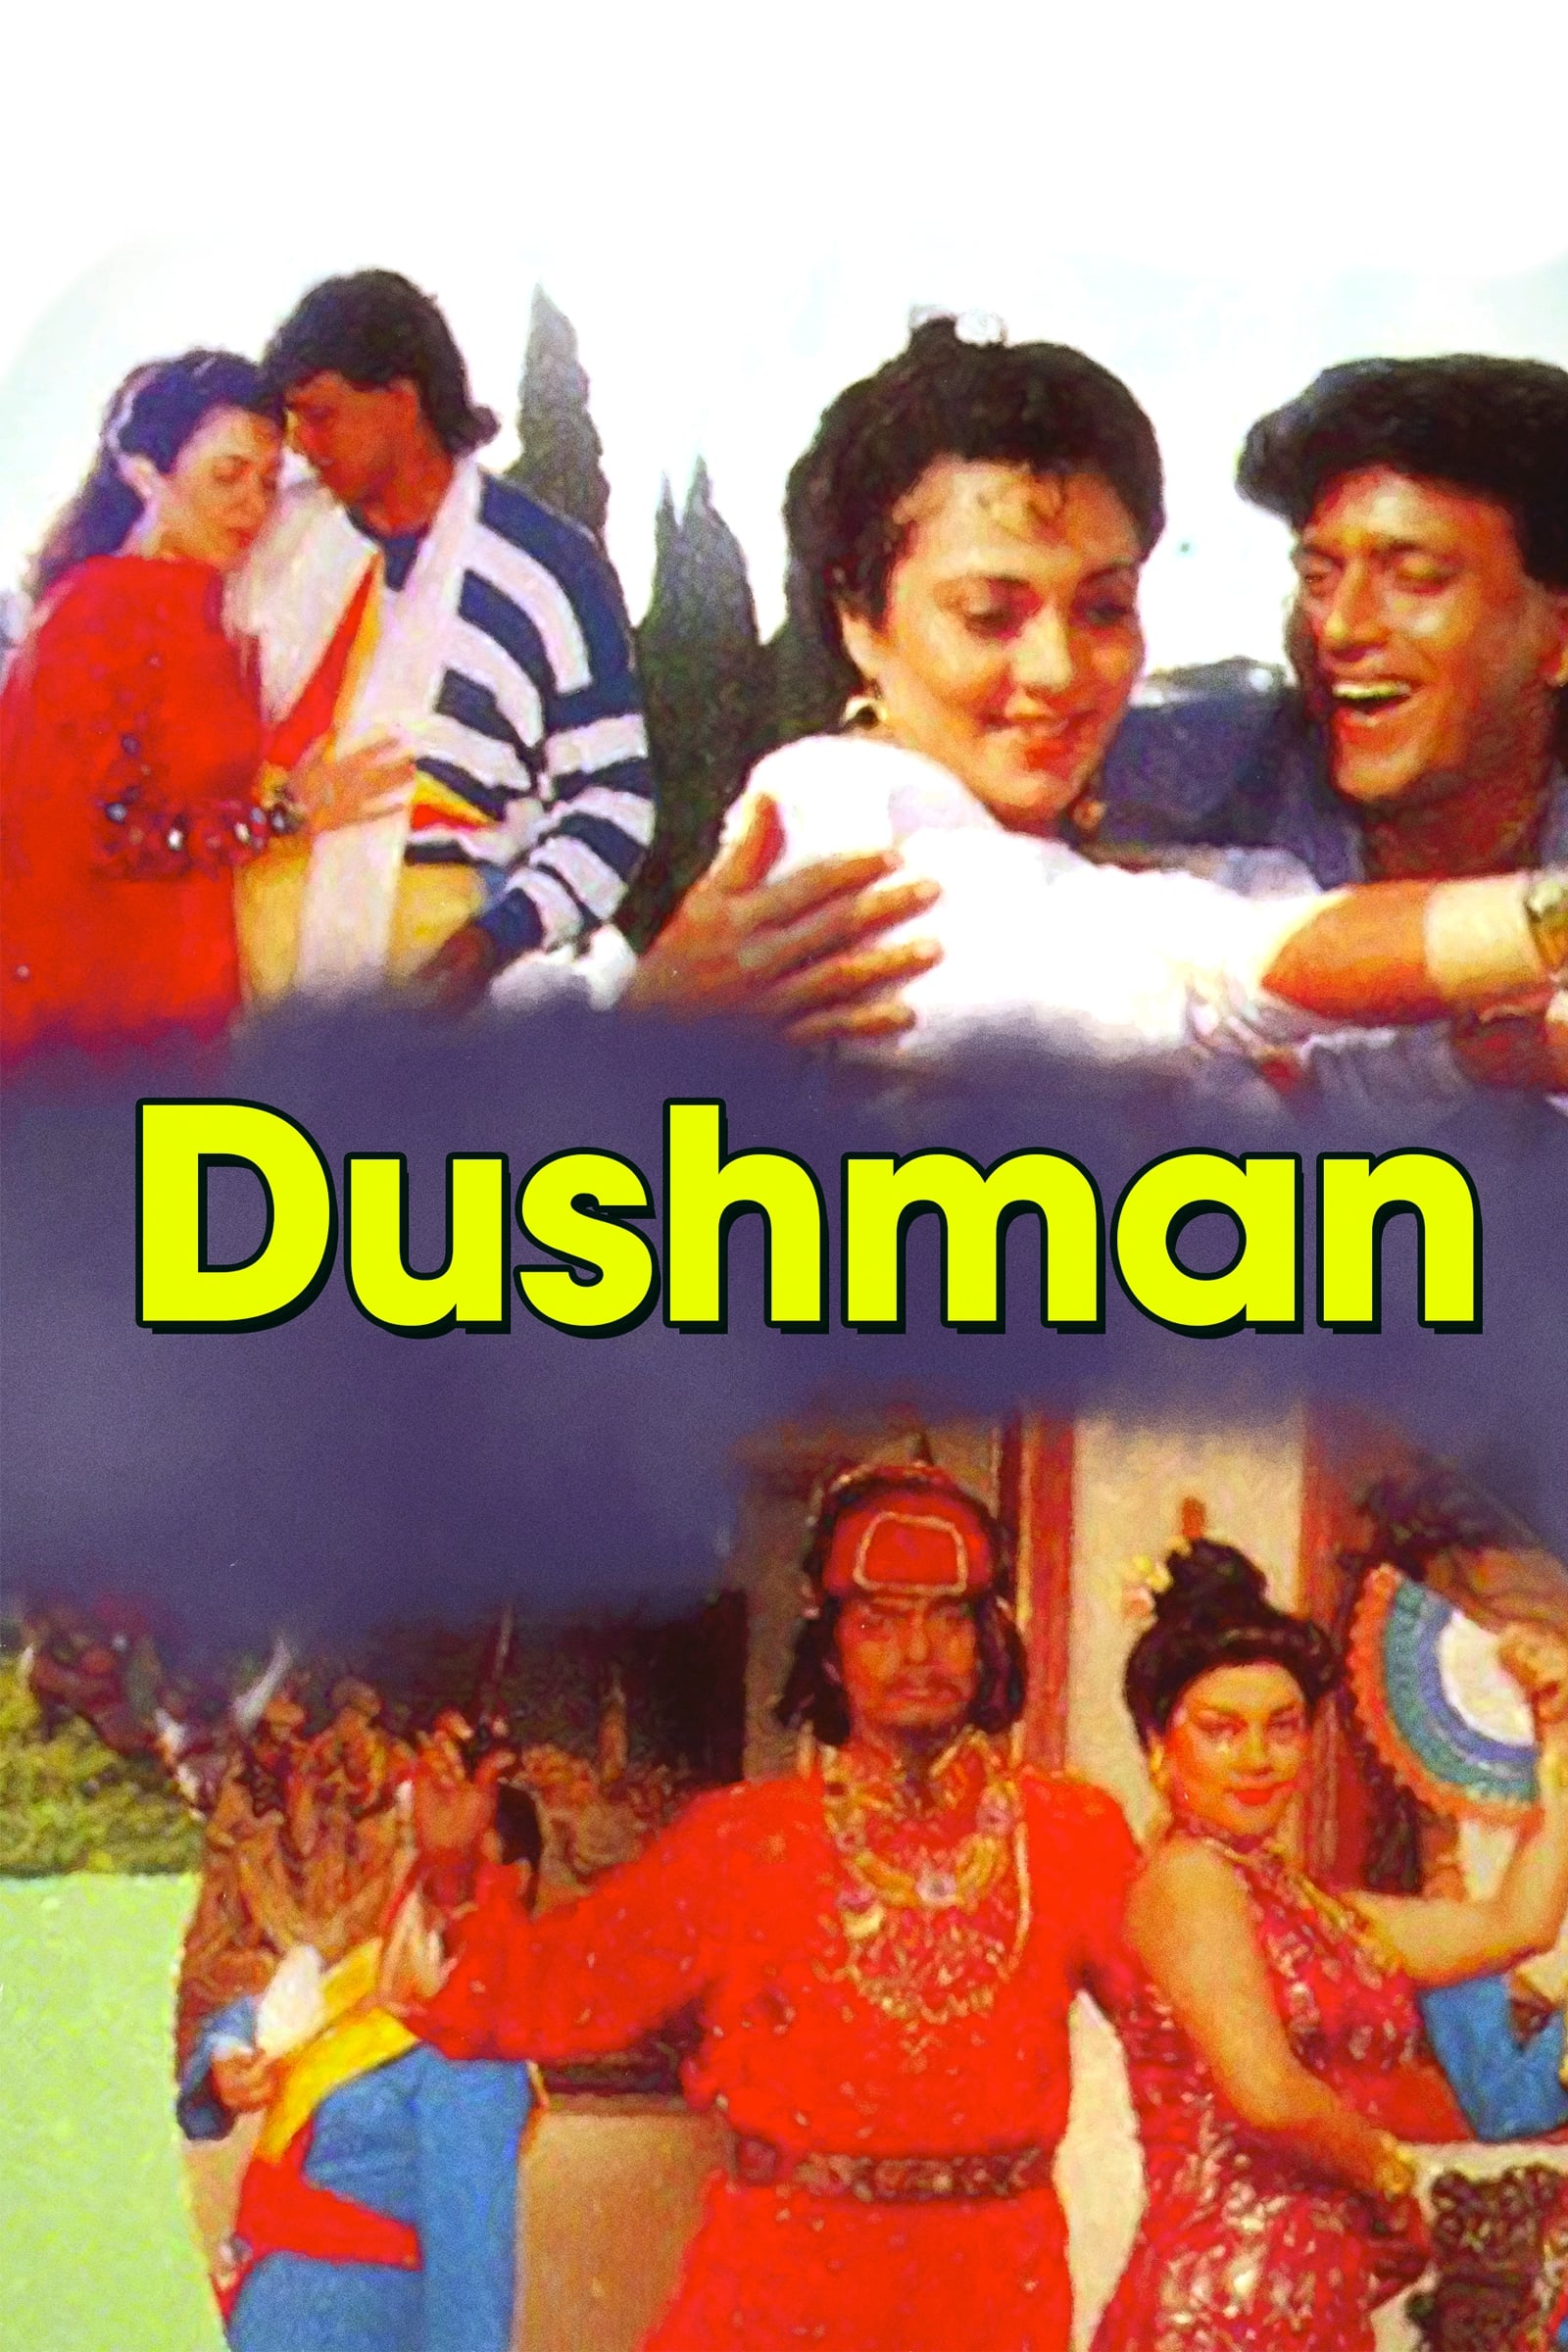 Dushman on FREECABLE TV